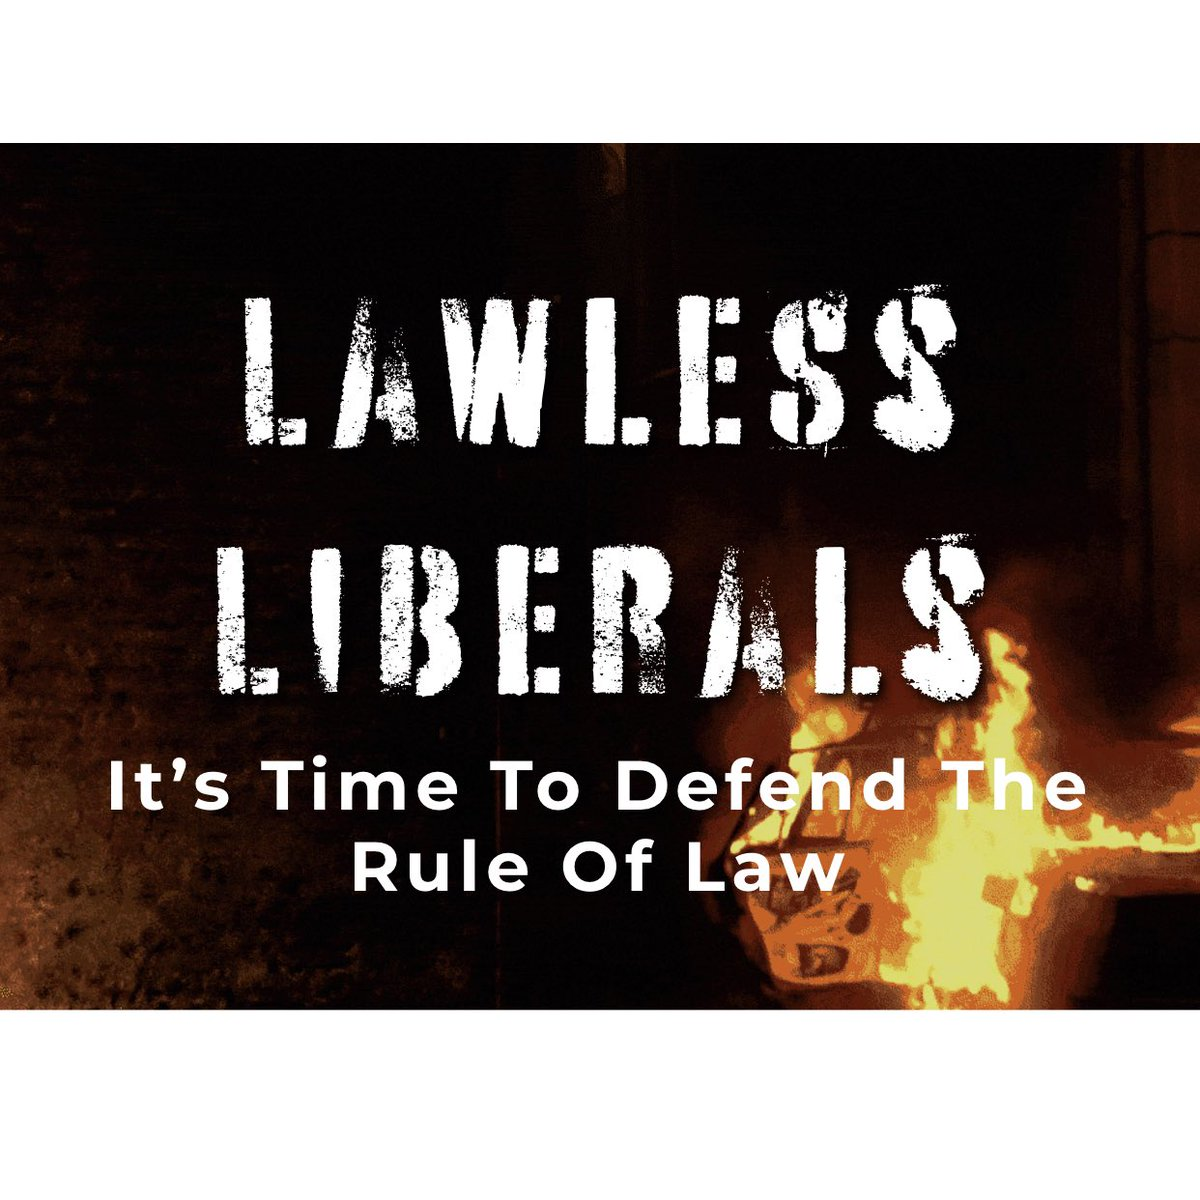 "@chrislhayes True ... REPUBLICAN ATTORNEYS GENERAL ASSOCIATION ran ads for more than 6 months straight around ""lawless liberals"" & the rule of law.  Than last week it was reported they promoted & organizing the rally turned deadly riot & their former CHAIR (AG Ken Paxton) spoke at the event."